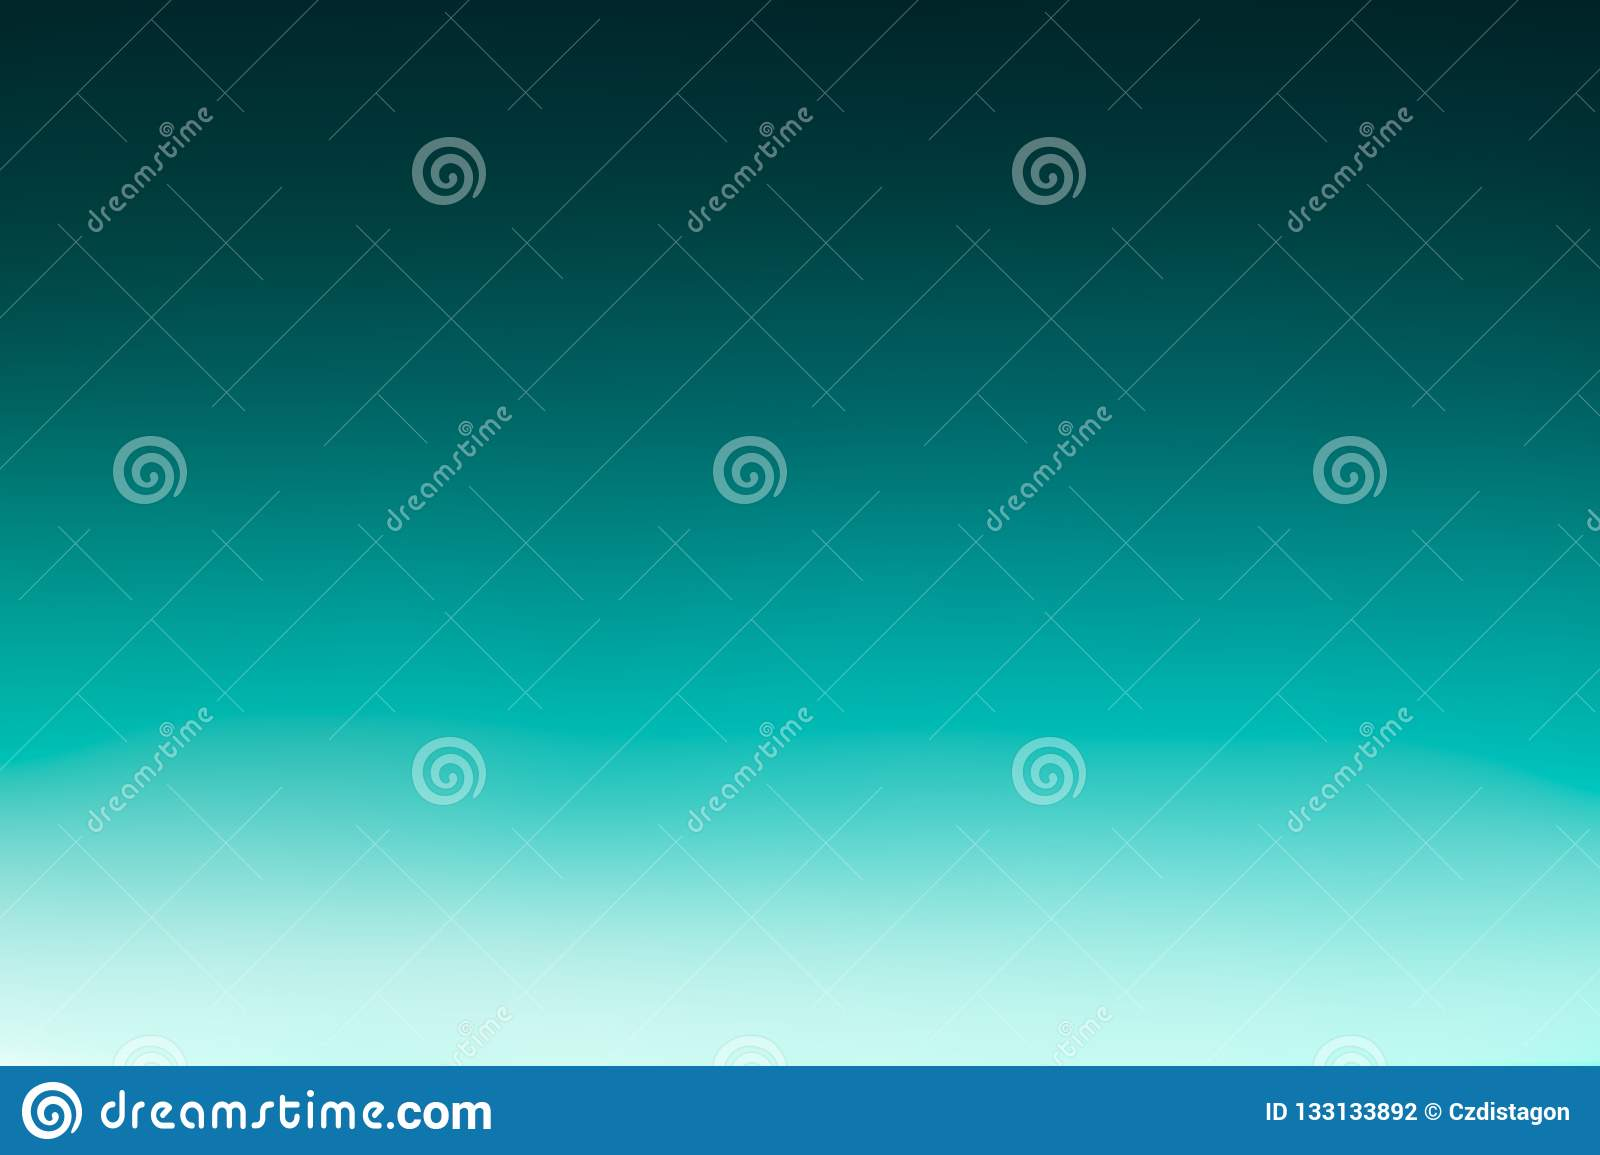 Ocean sea or sky blue azure turquoise watercolor abstract background. Horizontal watercolour gradient fill. Piece of heaven sea oc